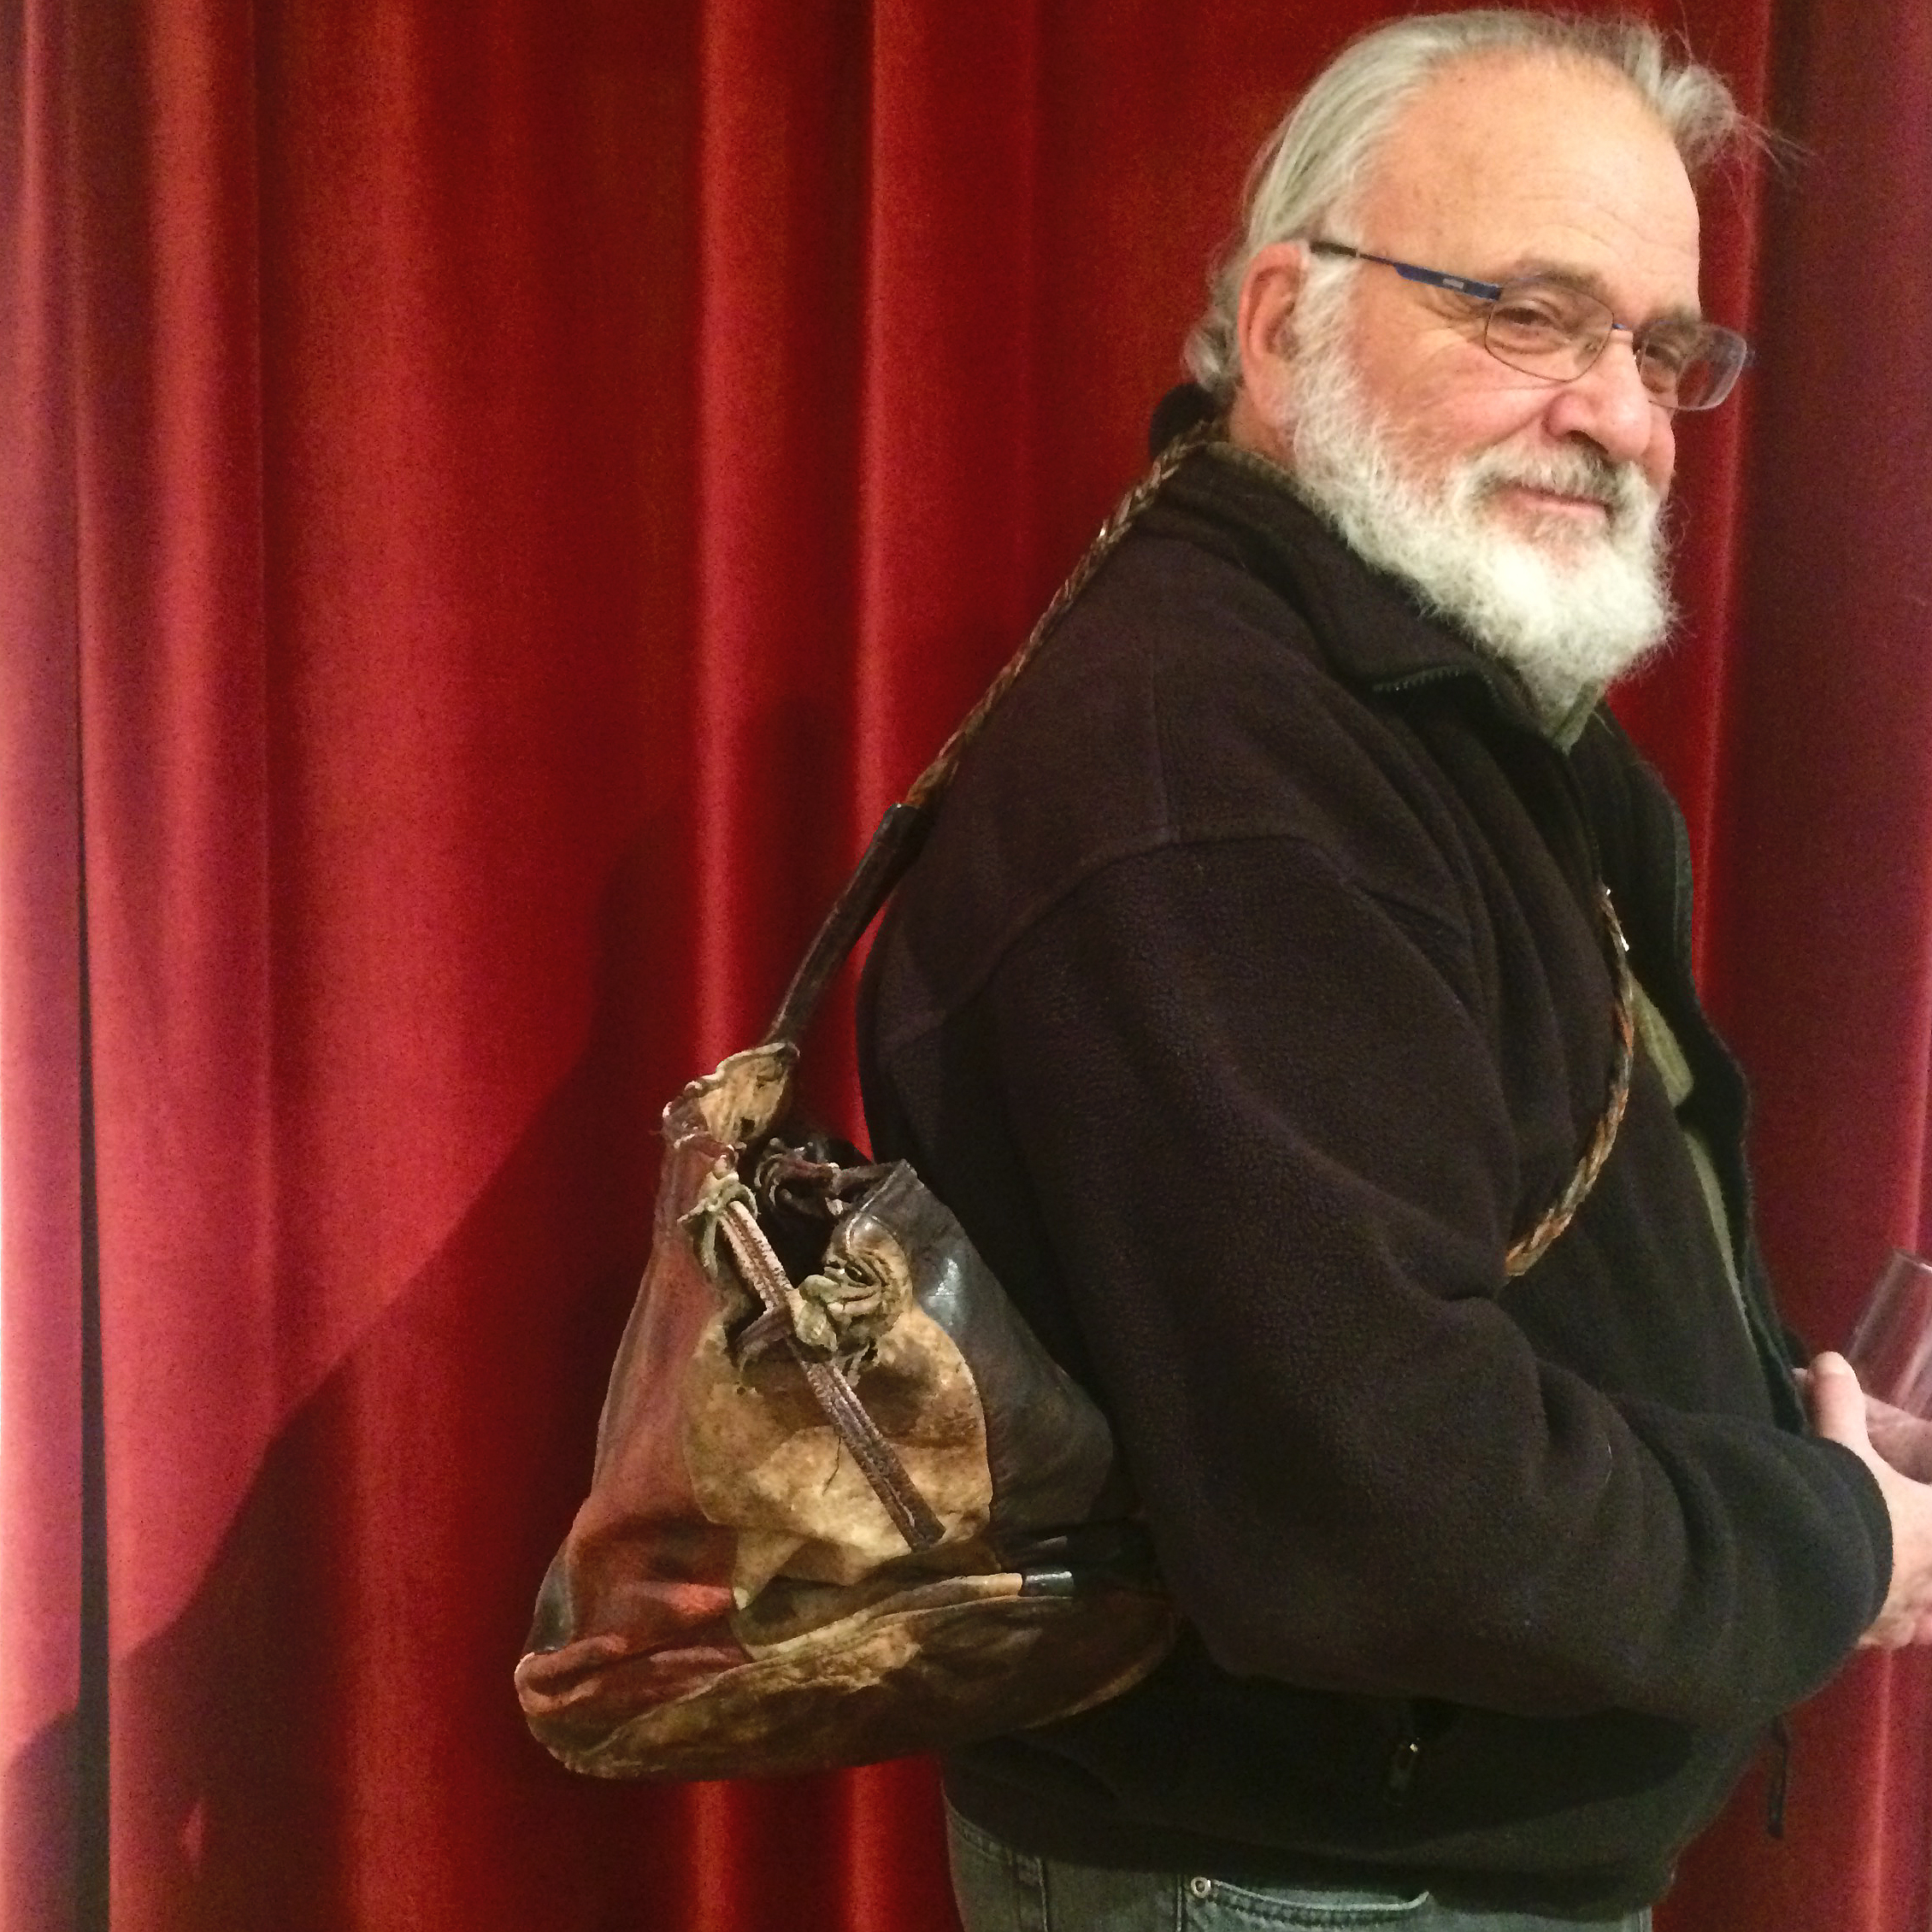 Al Wunder  Object: leather bag  Story: In 1971 I moved to San Francisco from New York. I started teaching dance solo for the first time. The bag was a payment for my classes, and I used it to carry my dance gear.